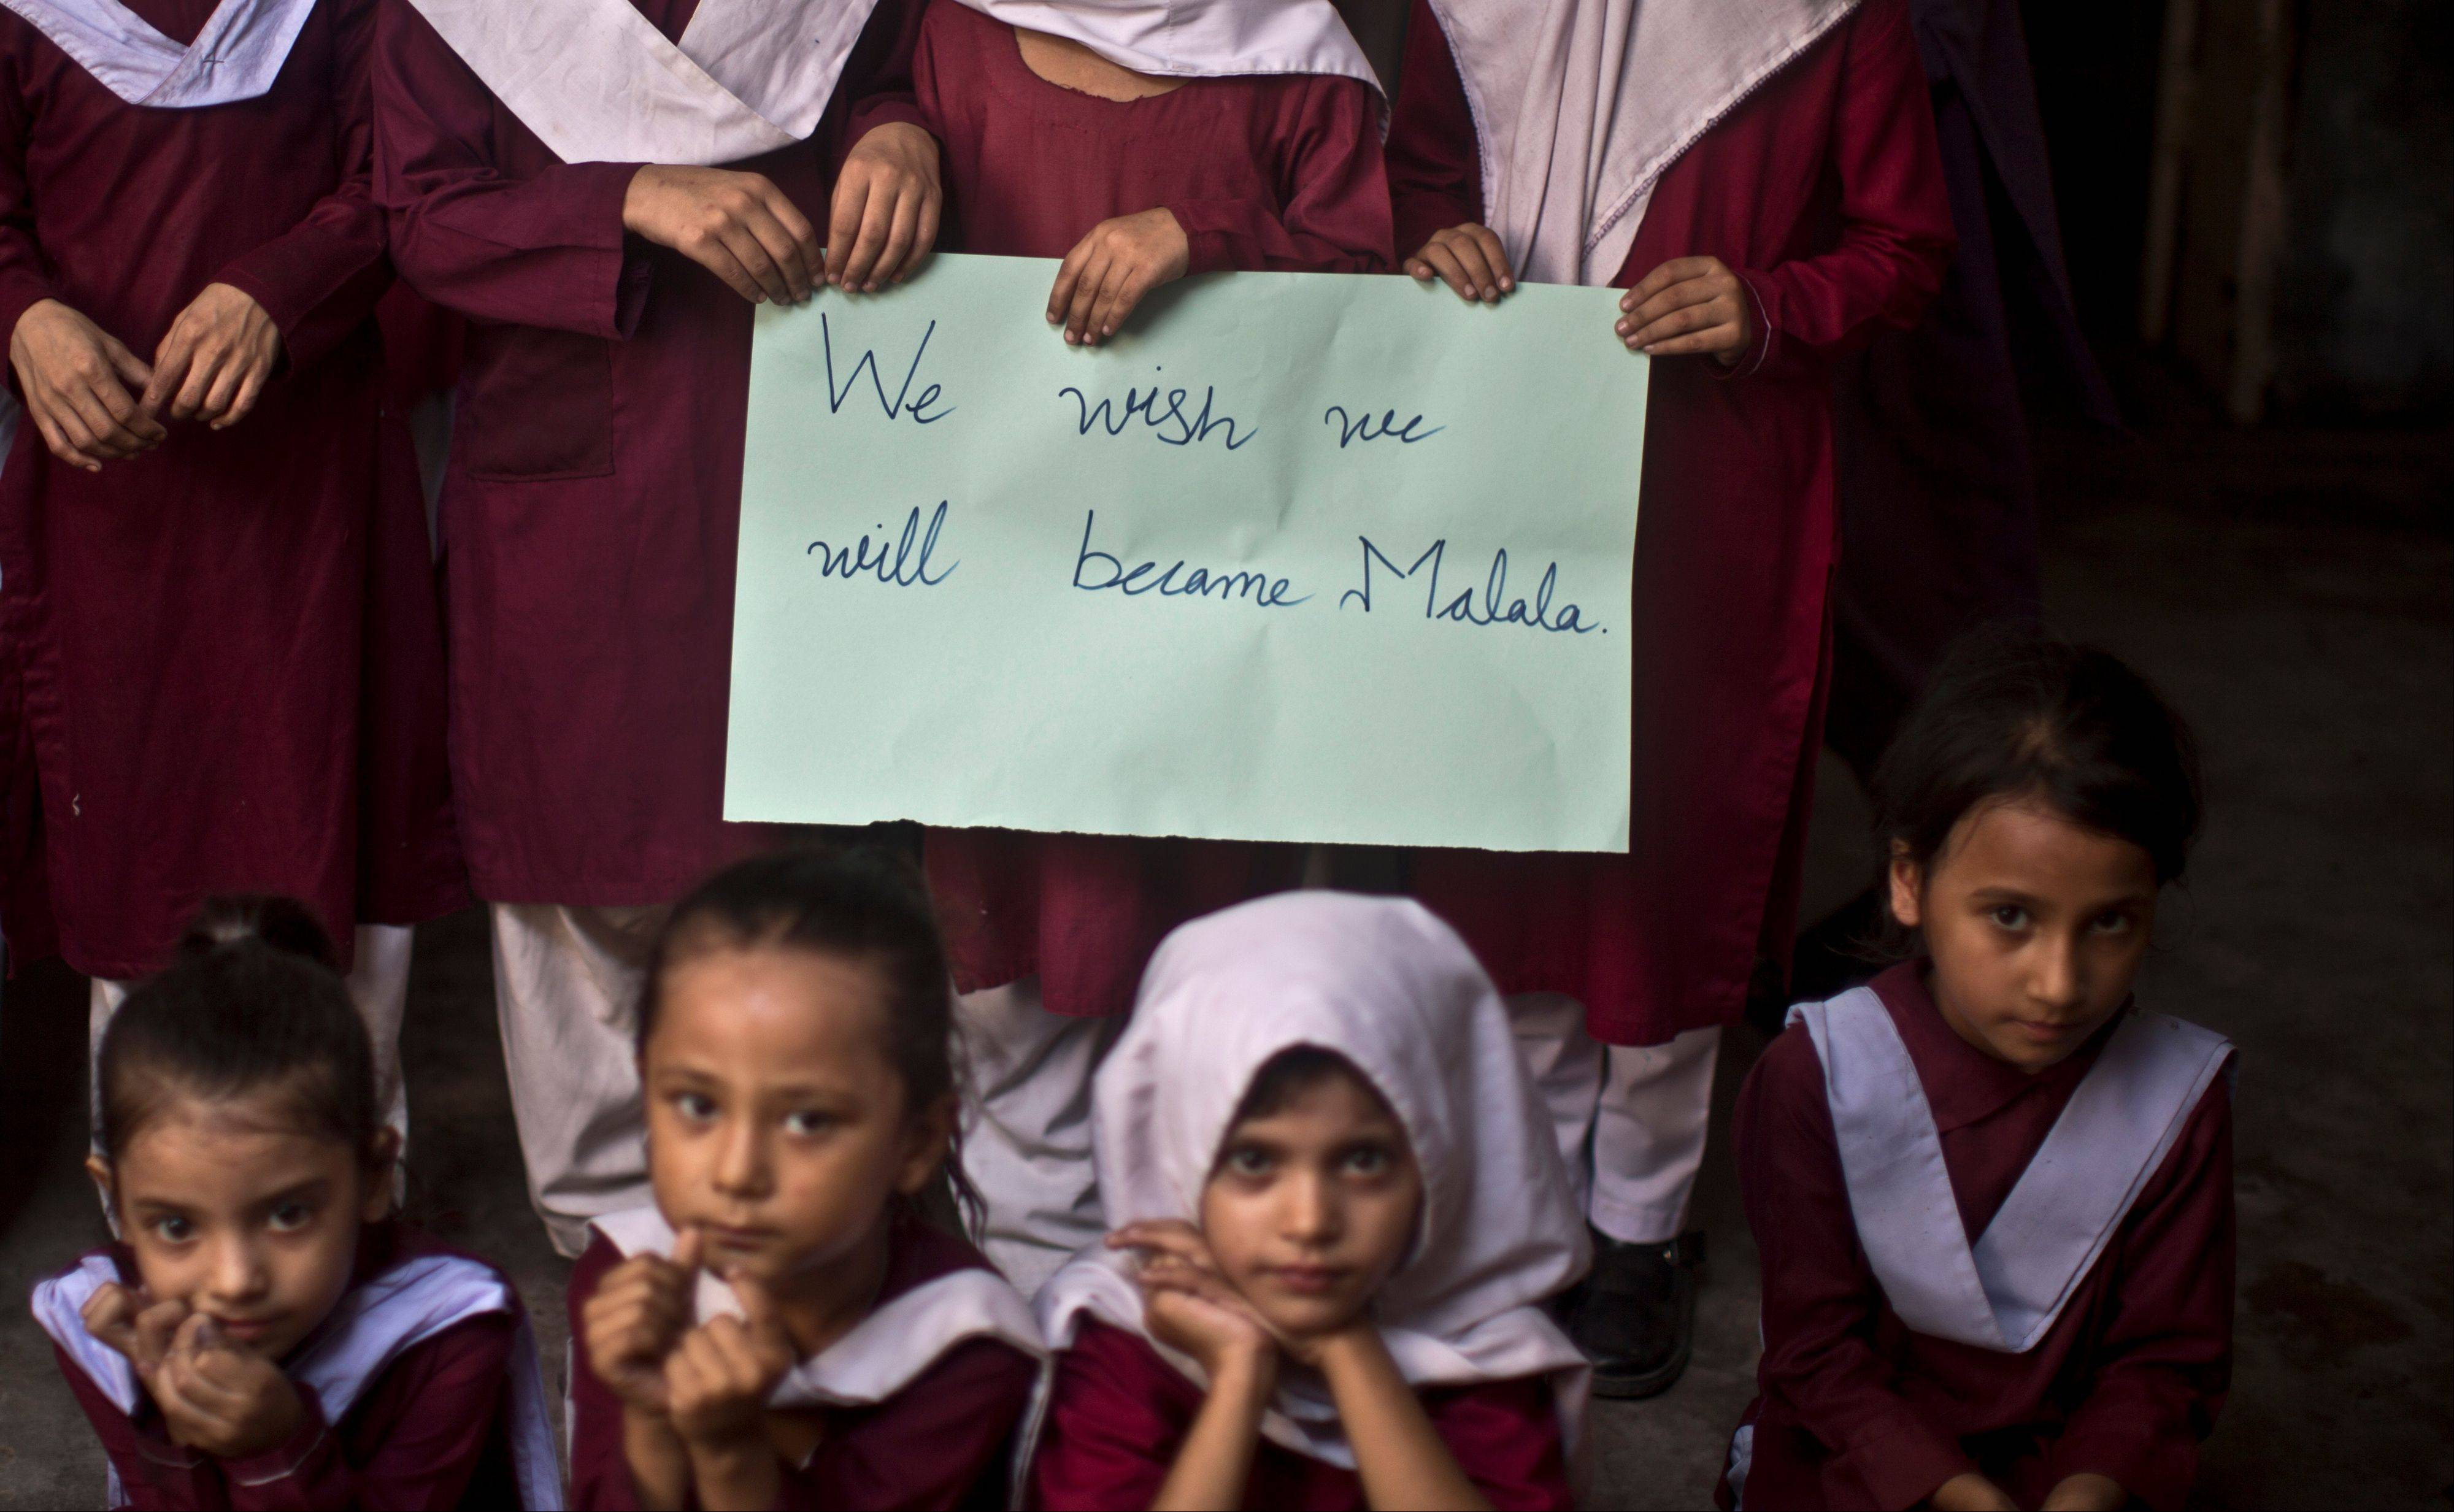 Pakistani school children hold a hand-written sign during a special class to commemorate the anniversary of Malala Yousufzai's shooting by Taliban, at a school in Rawalpindi, Pakistan, Wednesday.